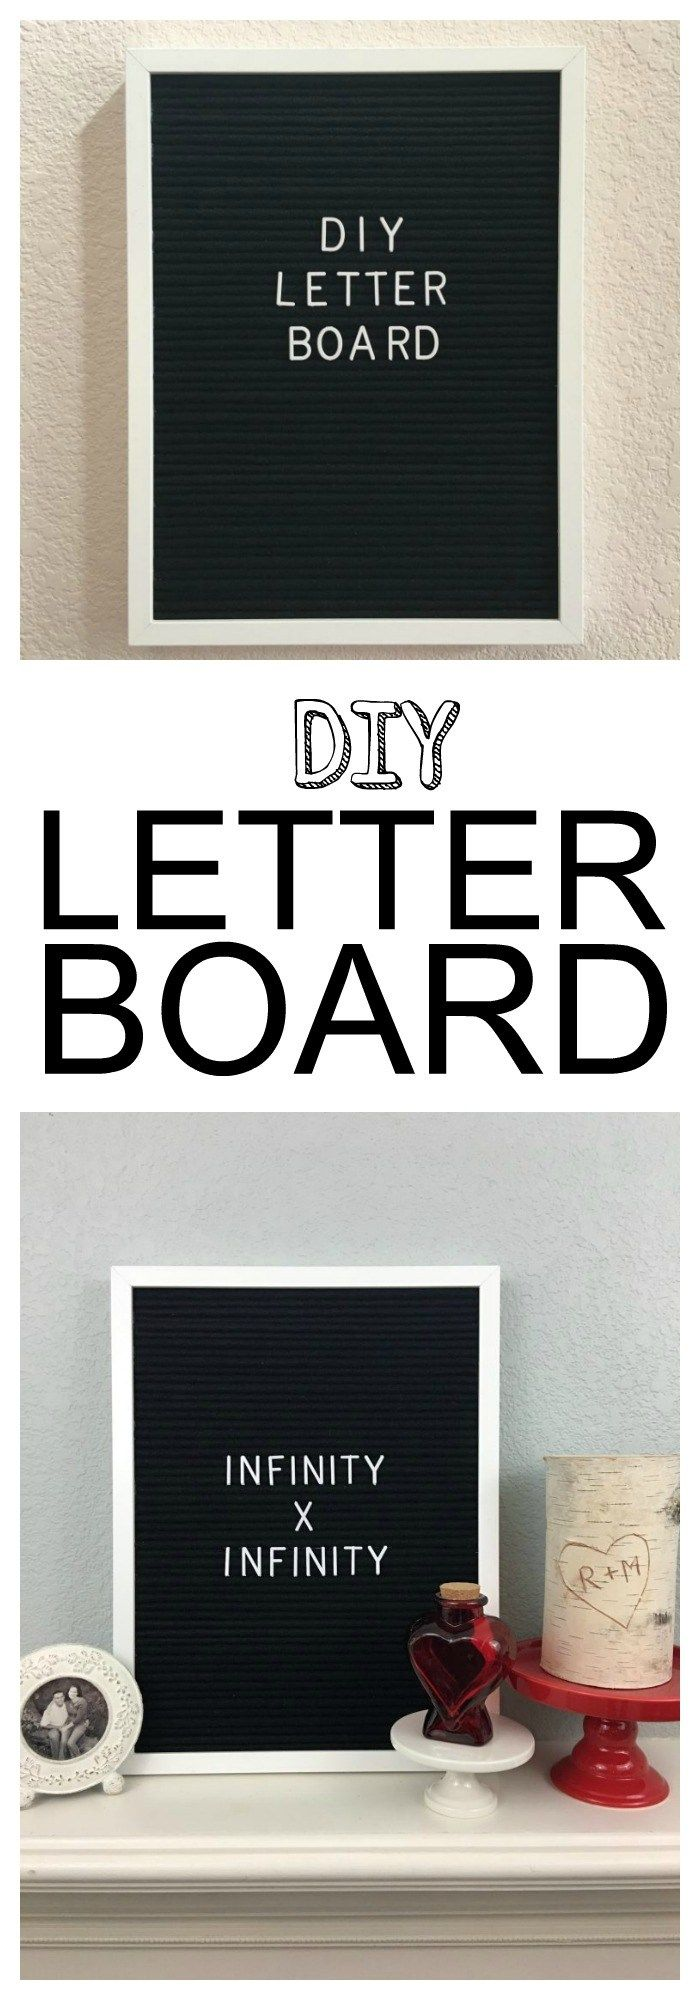 DIY letter board by jolly and happy